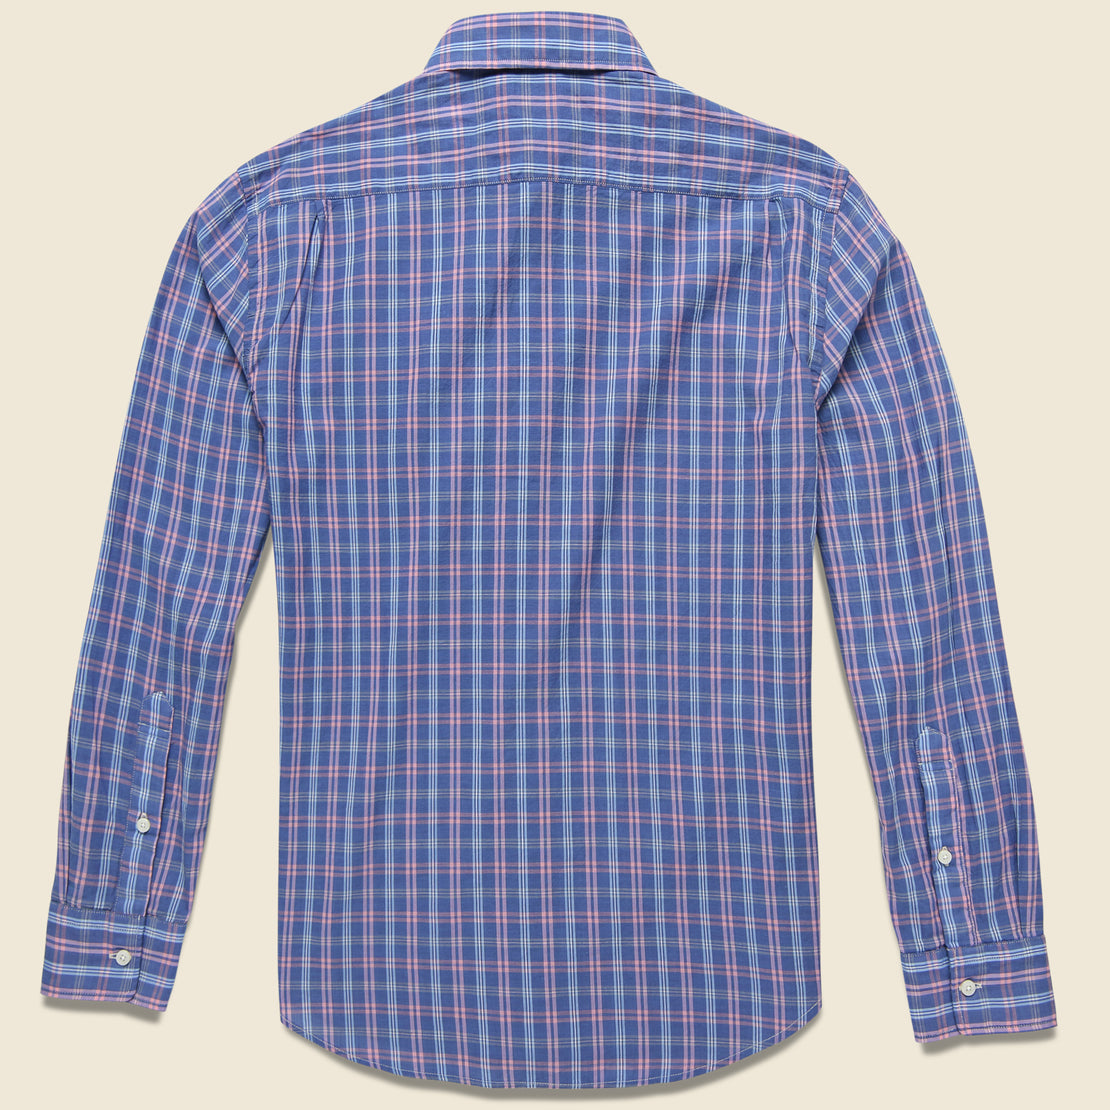 Ventura Shirt - Chambray Blue Plaid